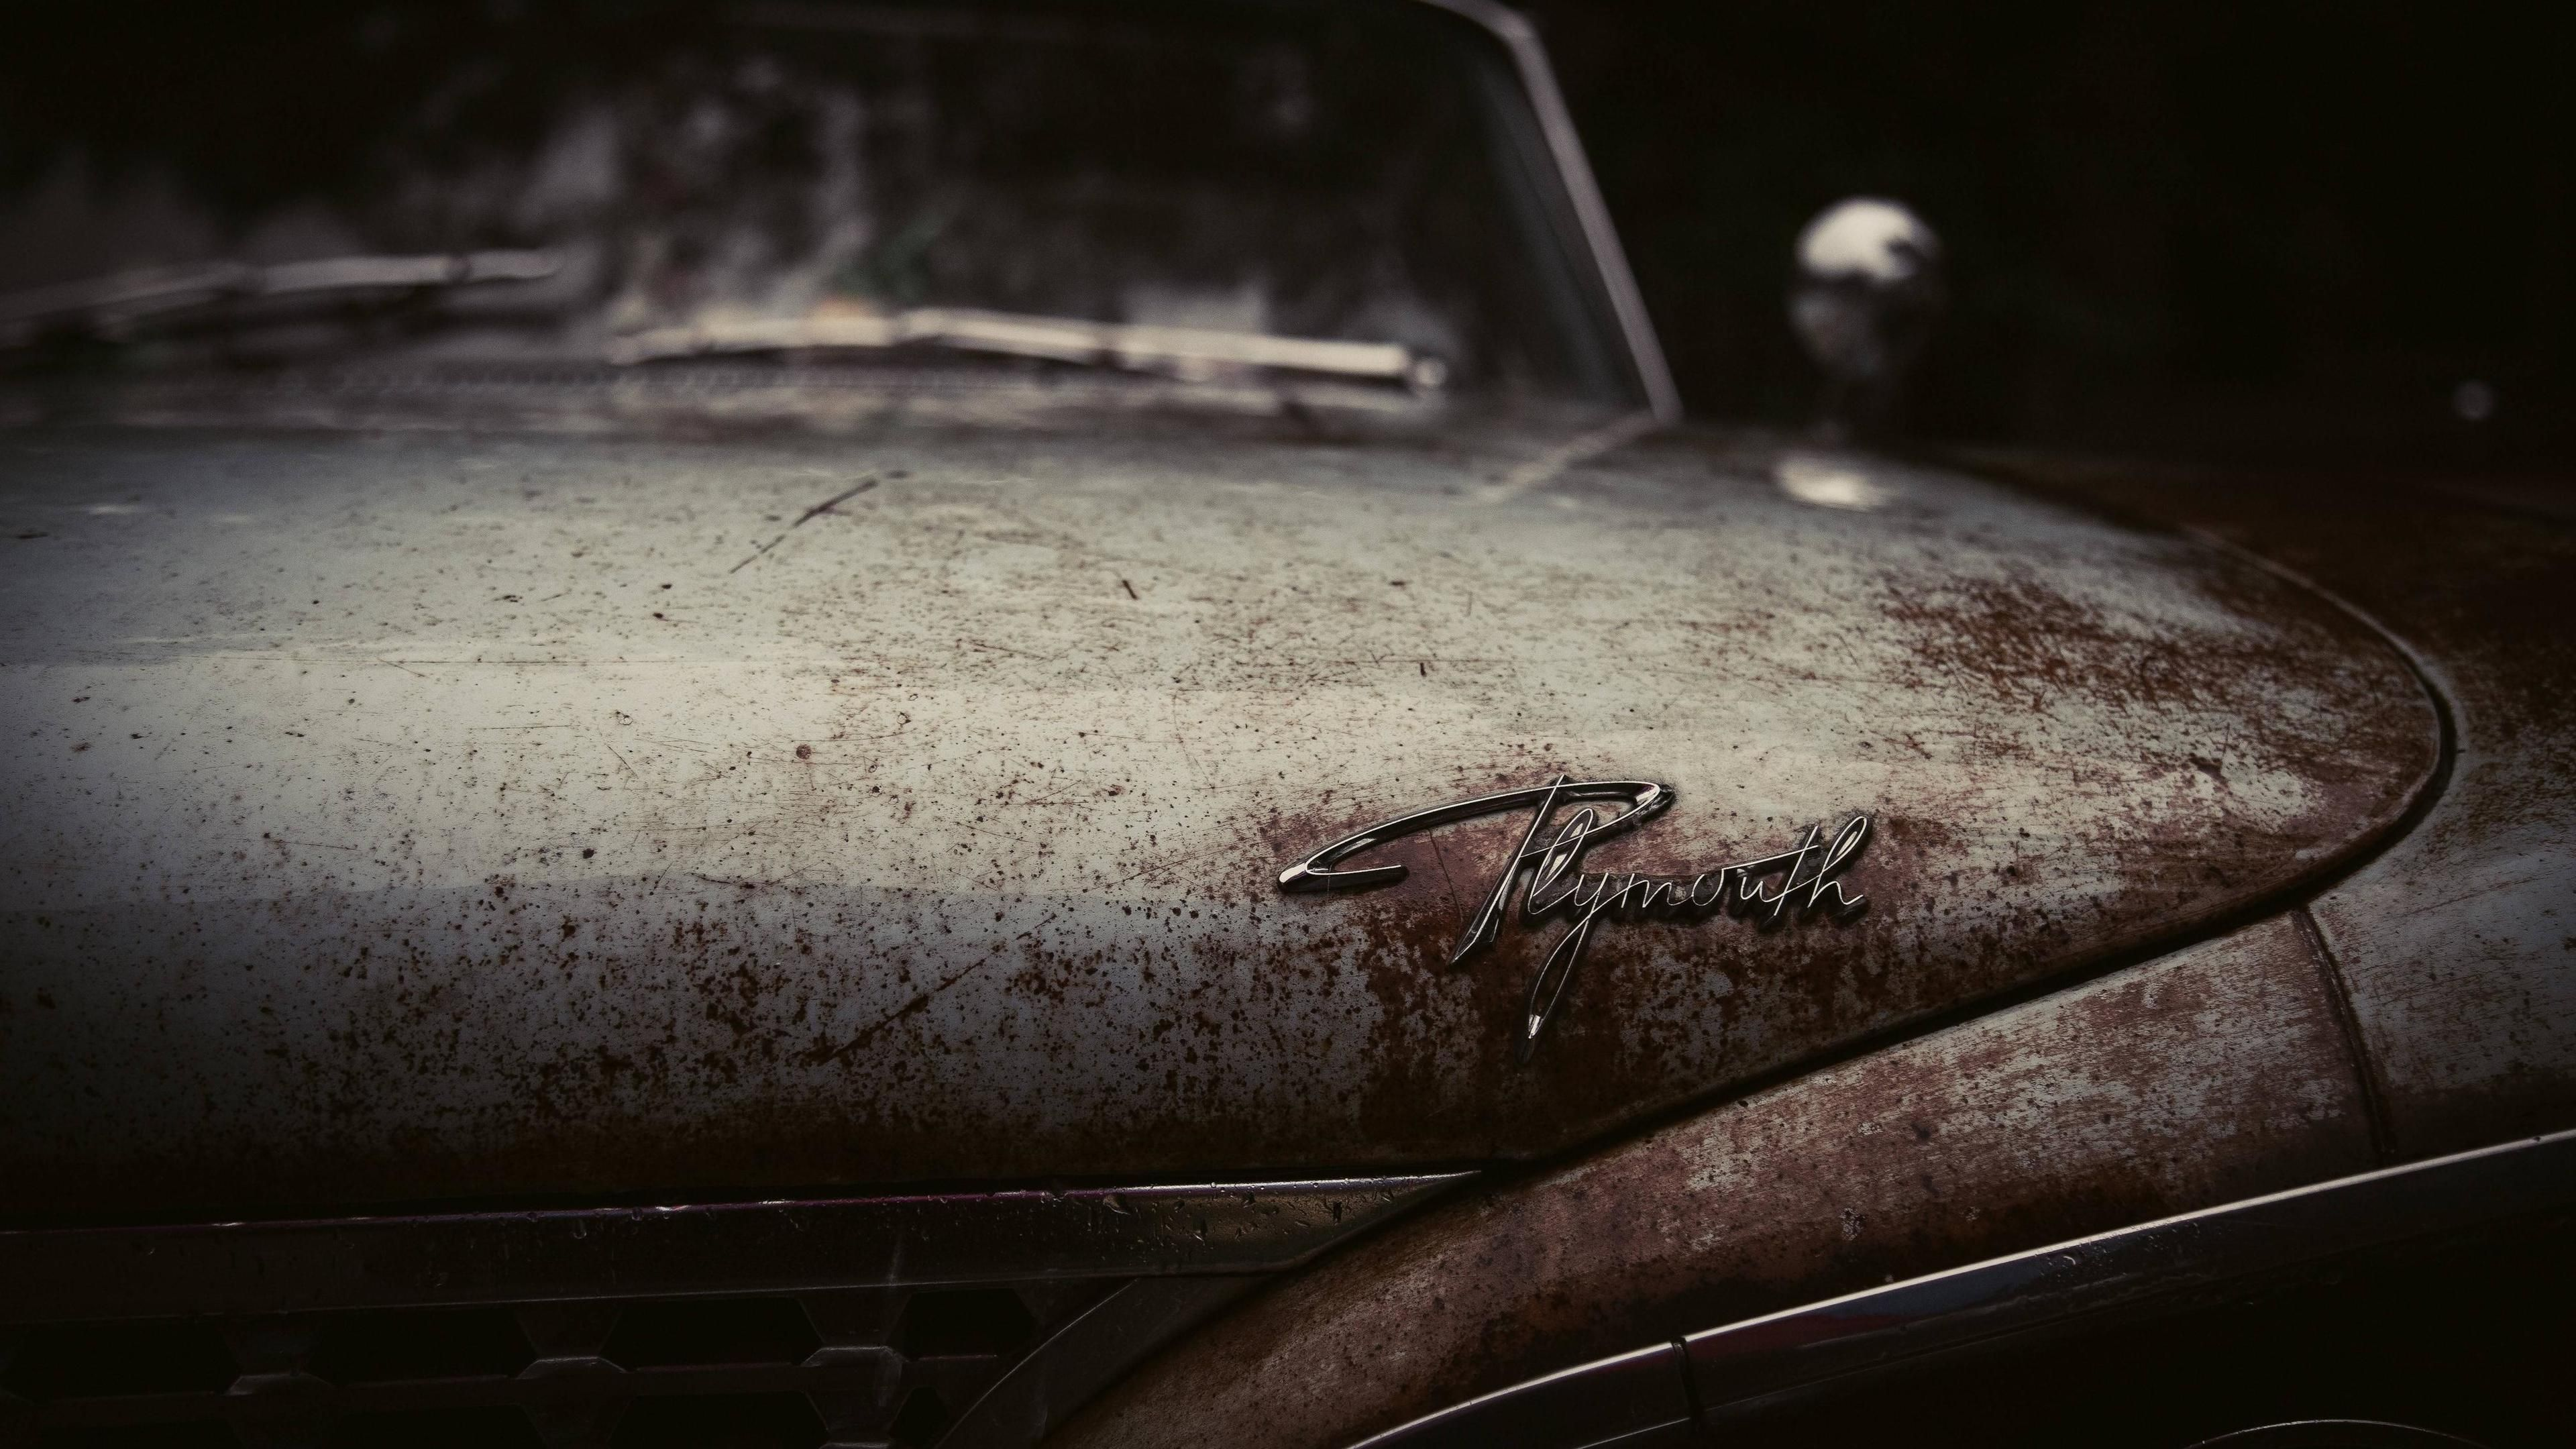 Vintage Retro Car vintage wallpapers, retro wallpapers, photography wallpapers, …